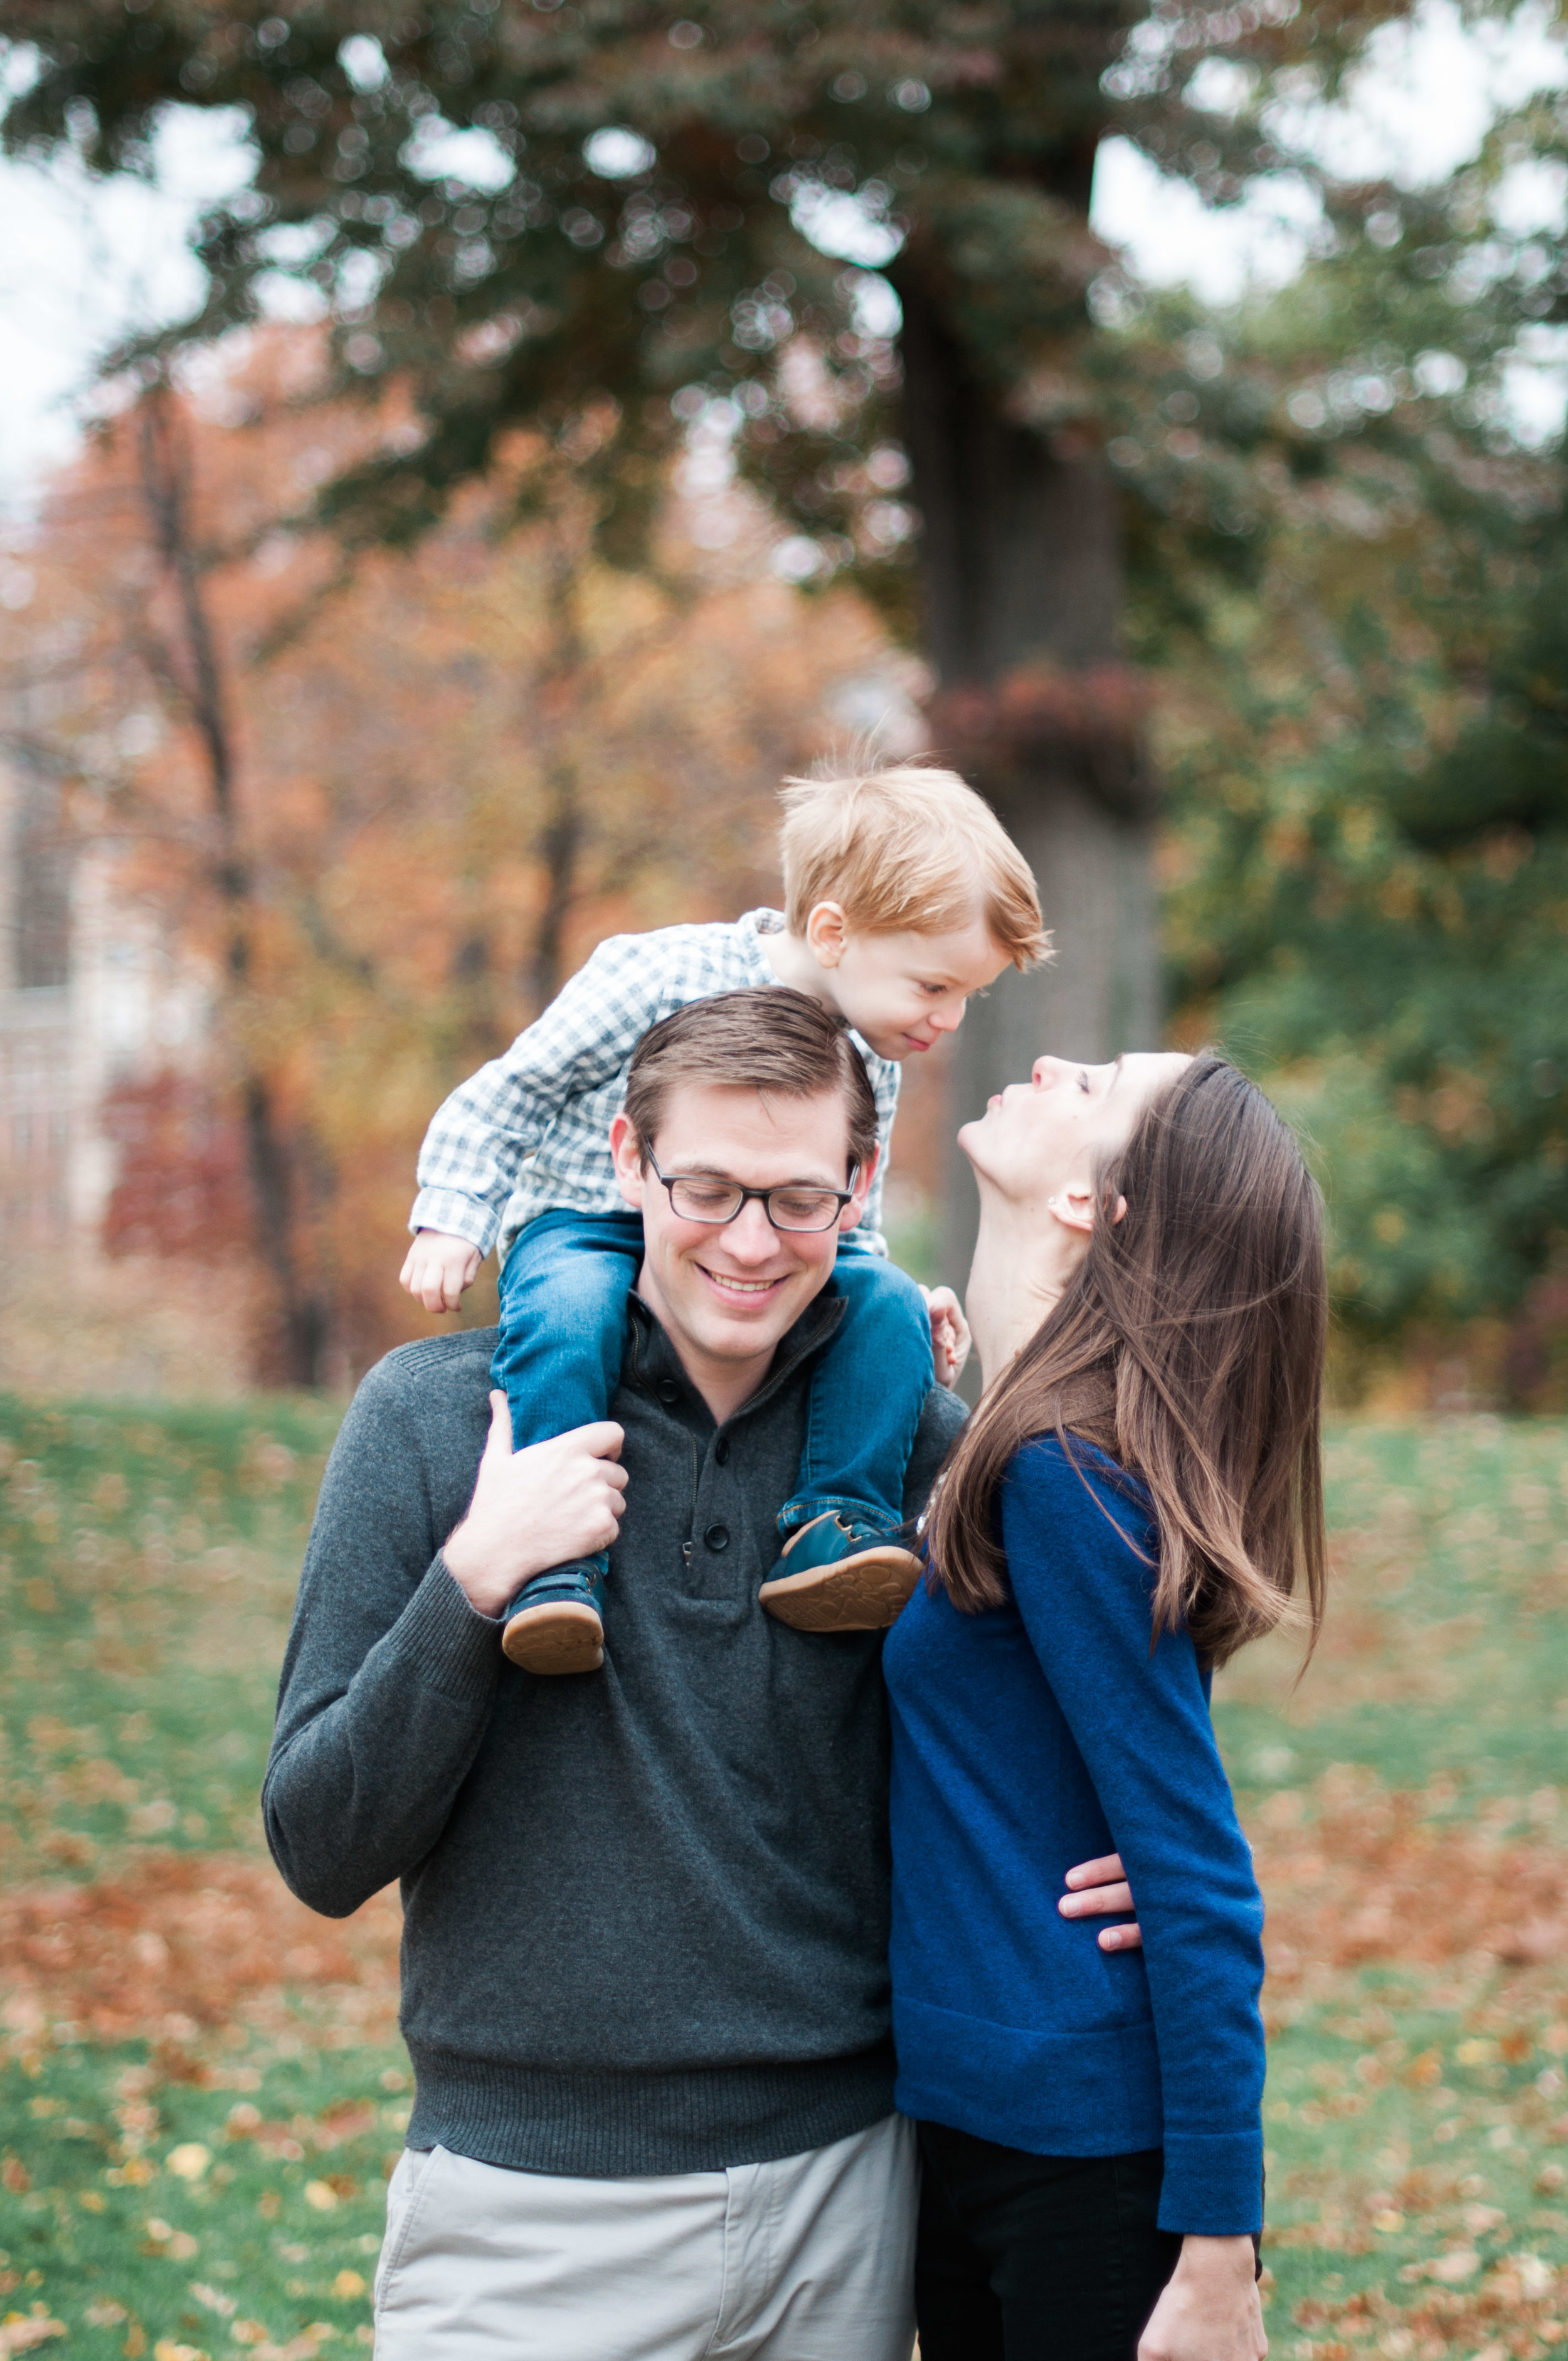 cate.austin.justin.familyphotos.fall.nyc.centralpark.nycphotography